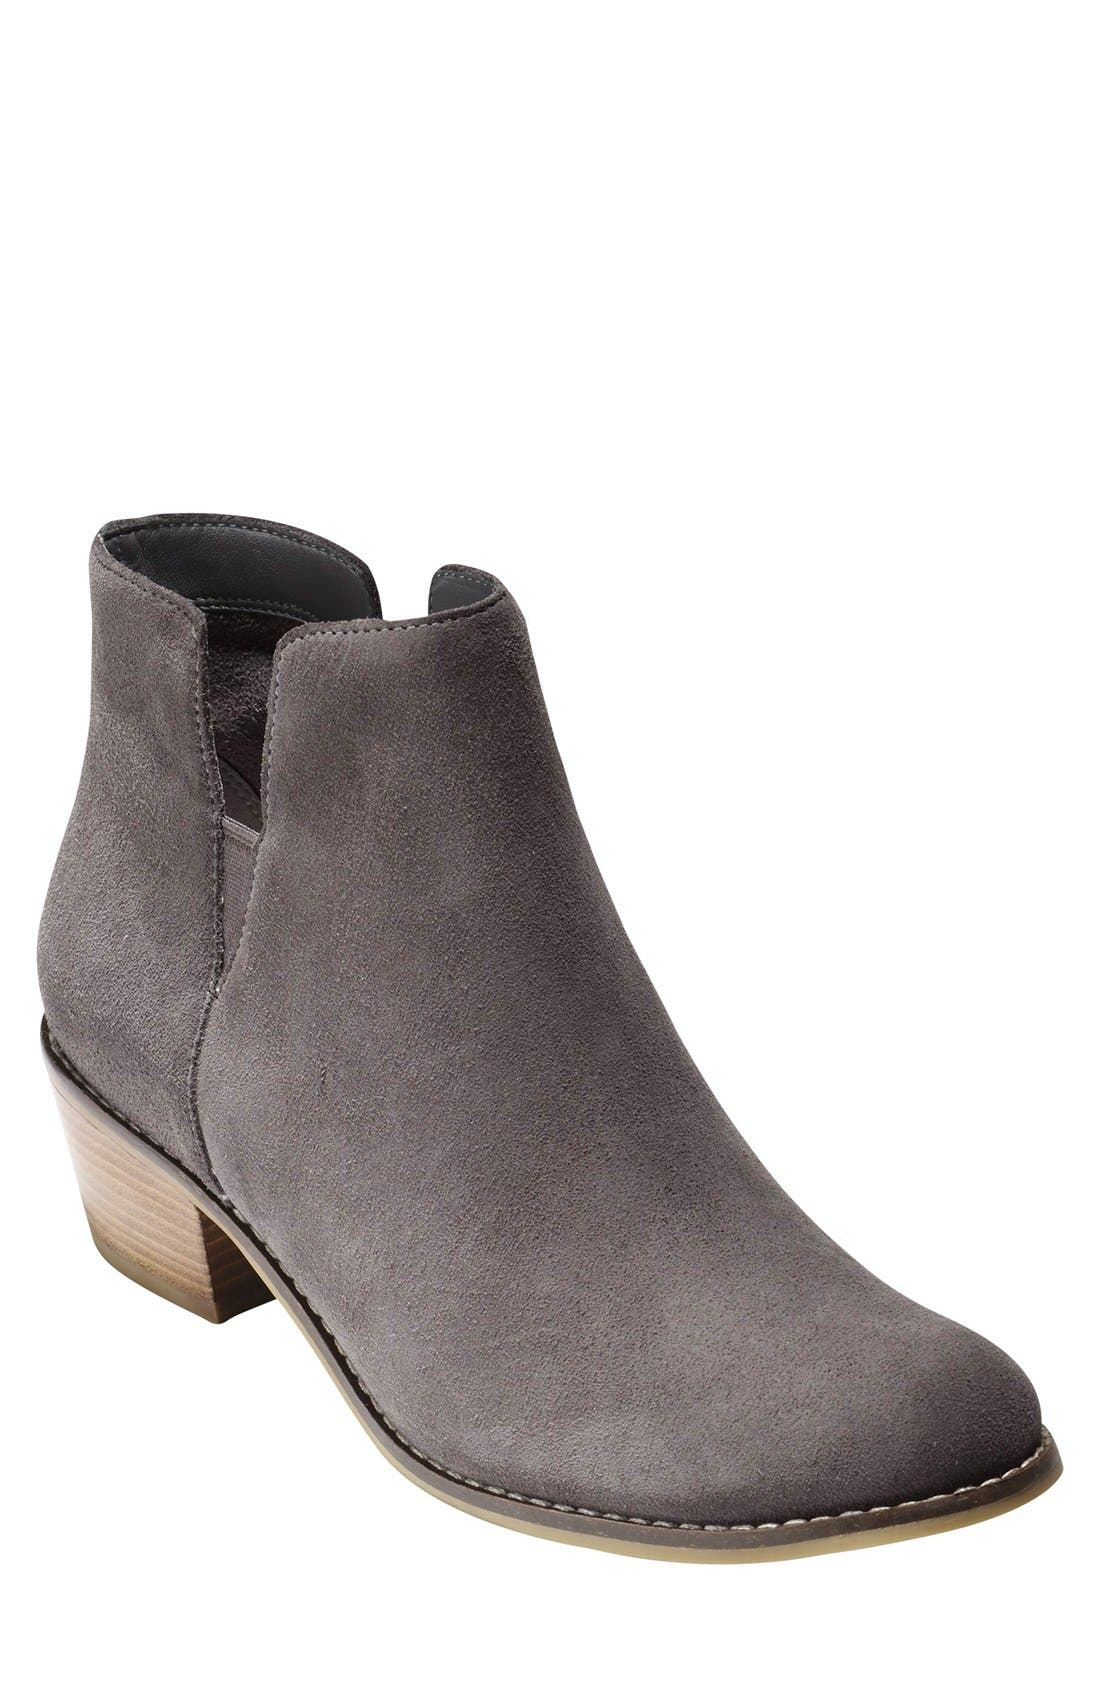 'Abbot' Chelsea Boot,                             Main thumbnail 5, color,